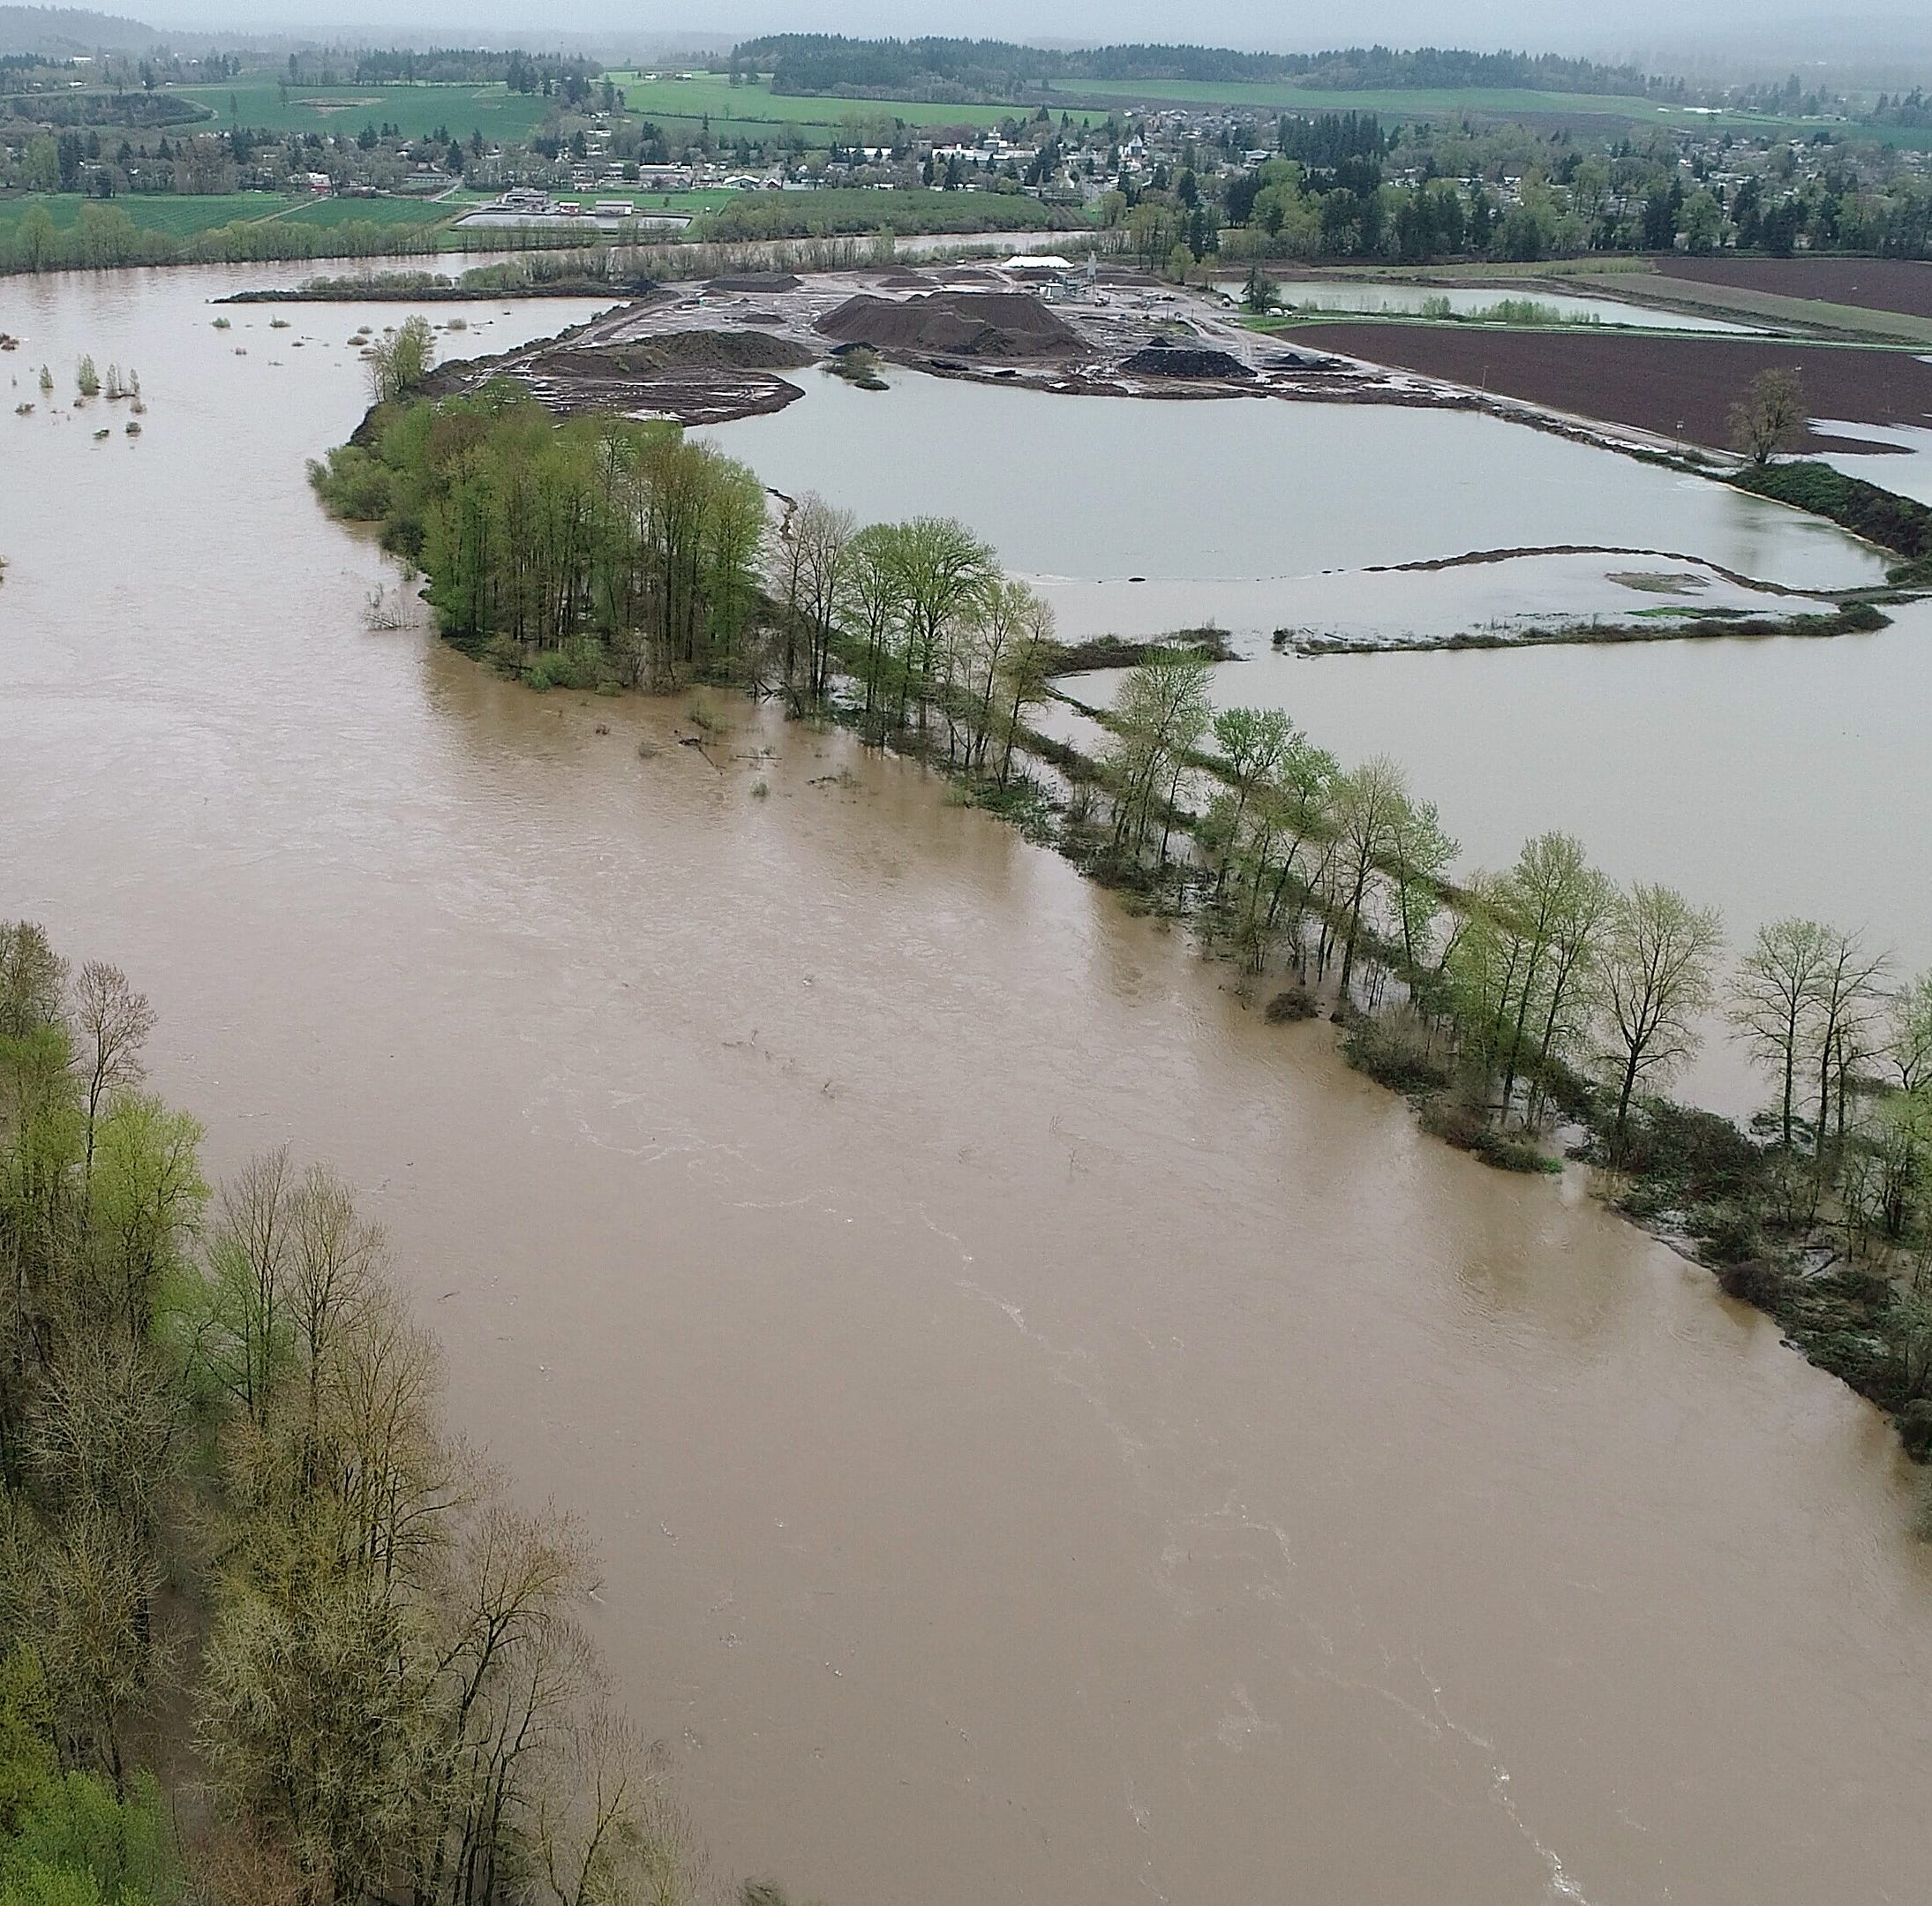 Salem prepares for Willamette River to reach highest level since 2012, closing roads, parks